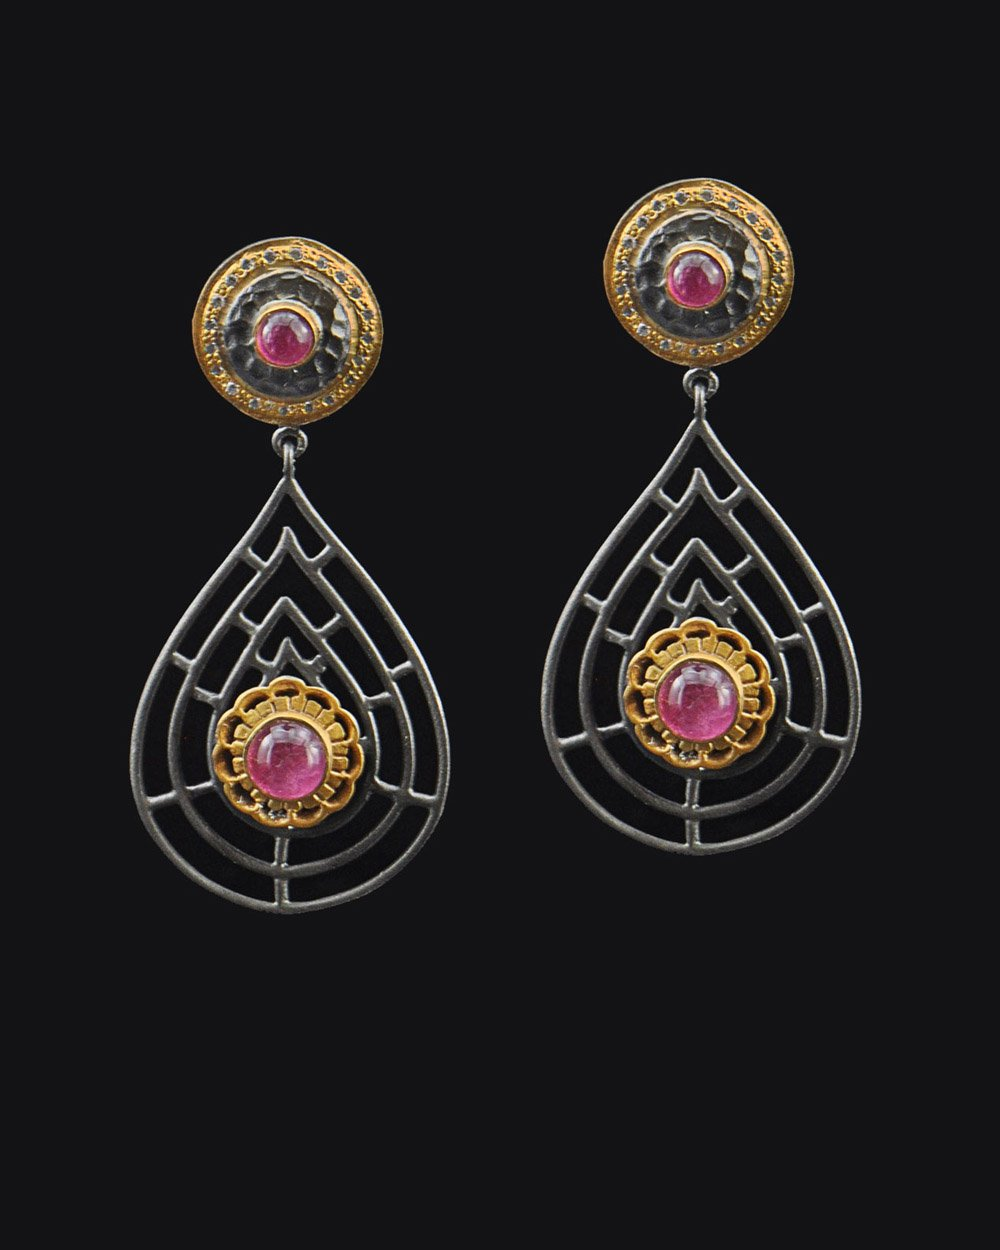 Victorian Style Tourmaline and Crystals Earrings